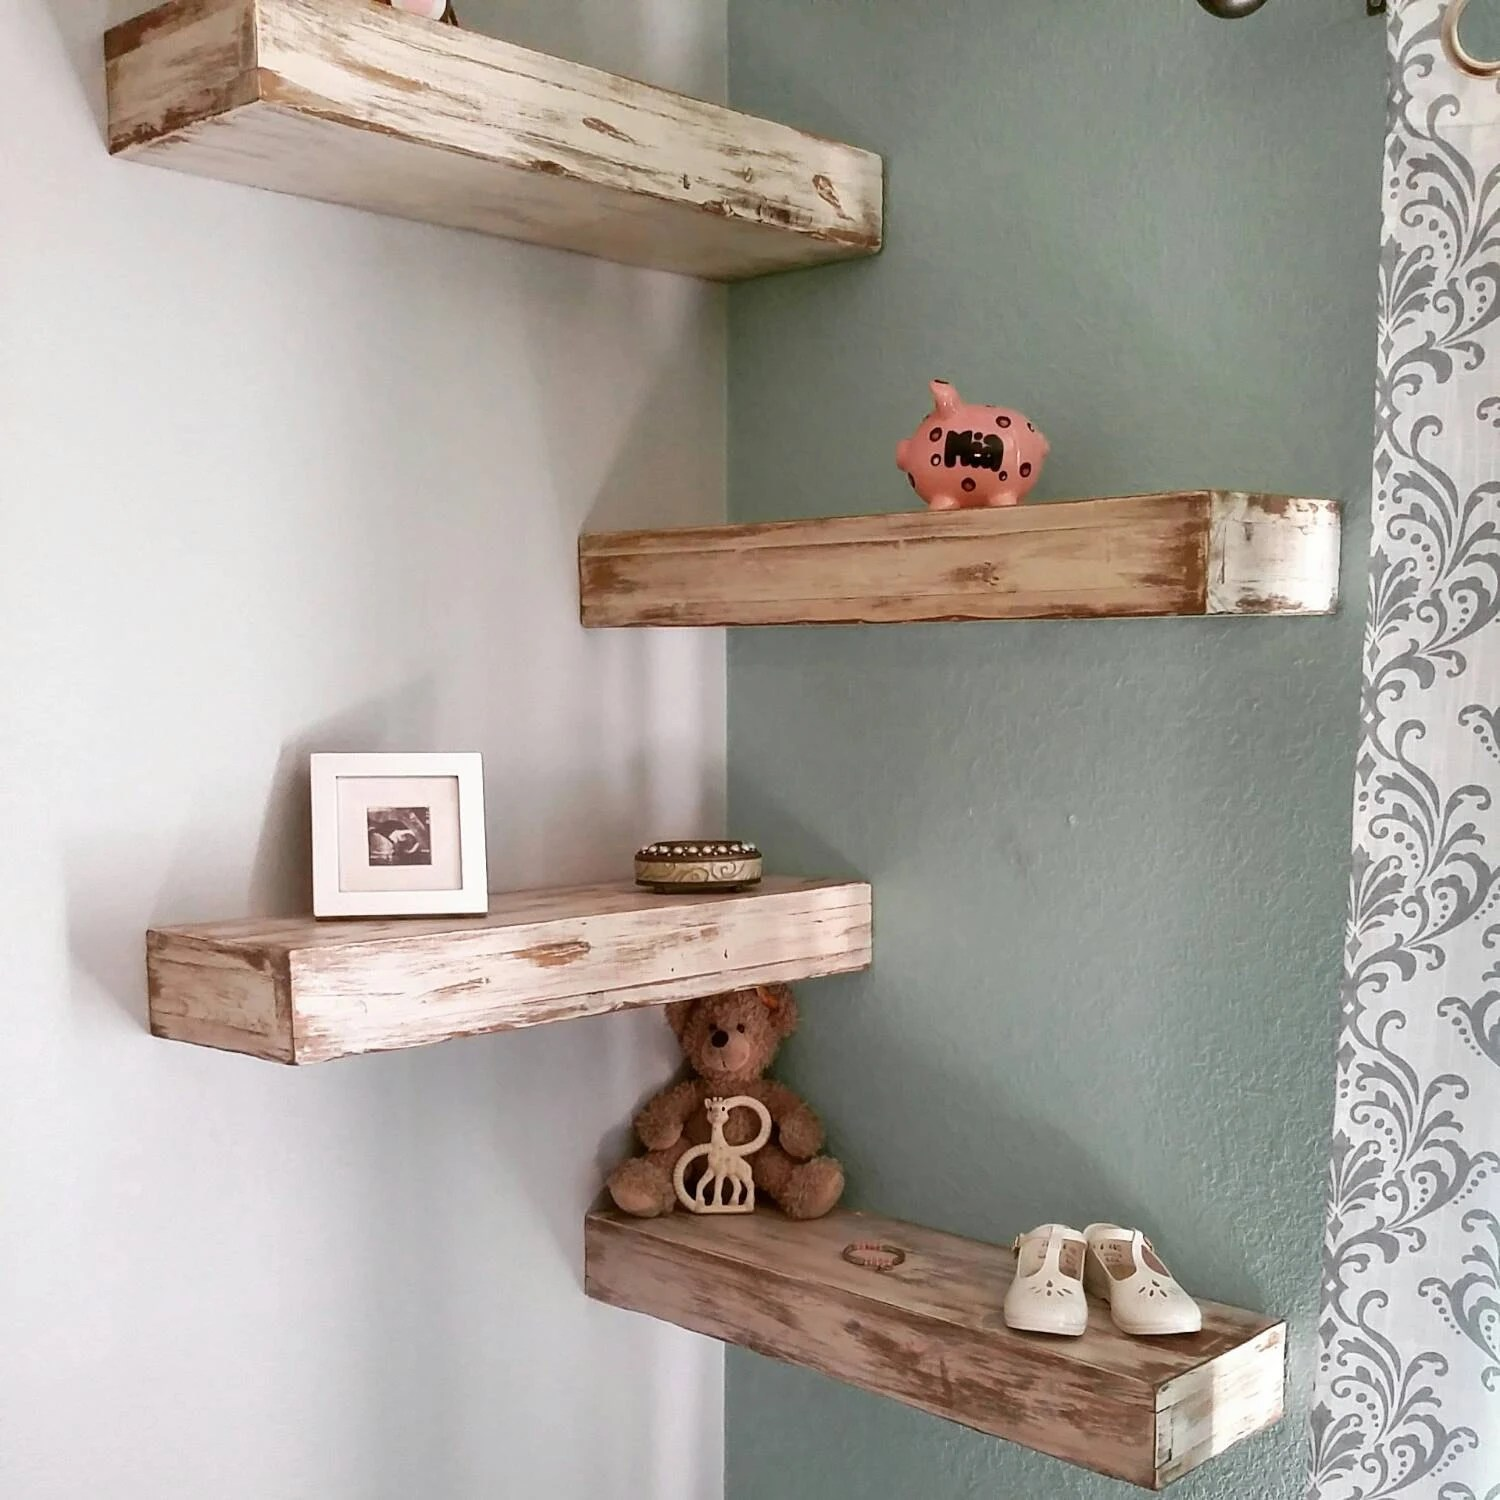 Wall Shelf Design Listing Rustic Reclaimed Wood Floating Shelves Wall Shelf Mantel Farmhouse White Mixed